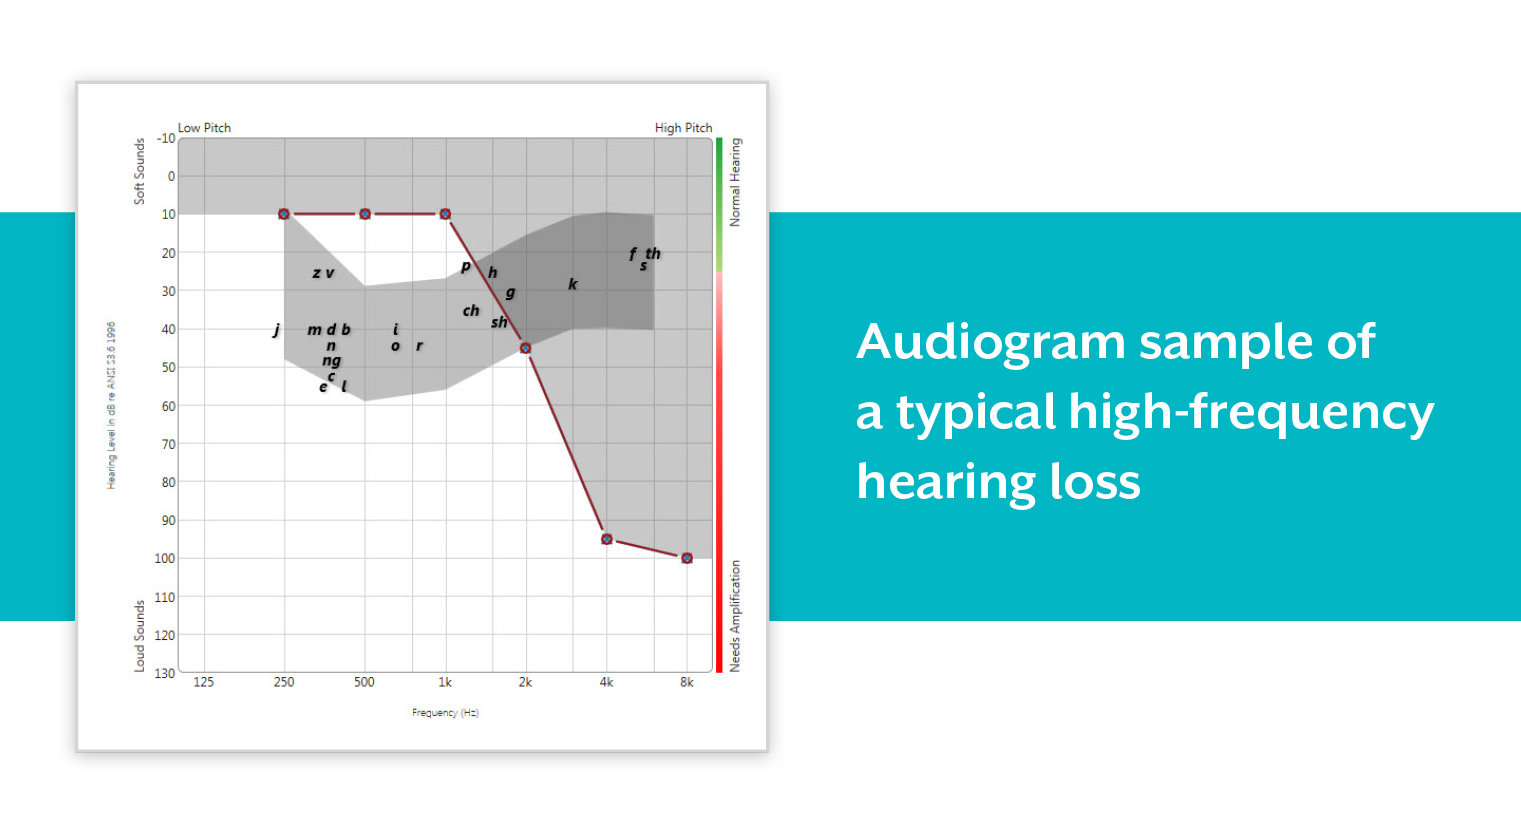 High-Frequency hearing loss audiogram sample.